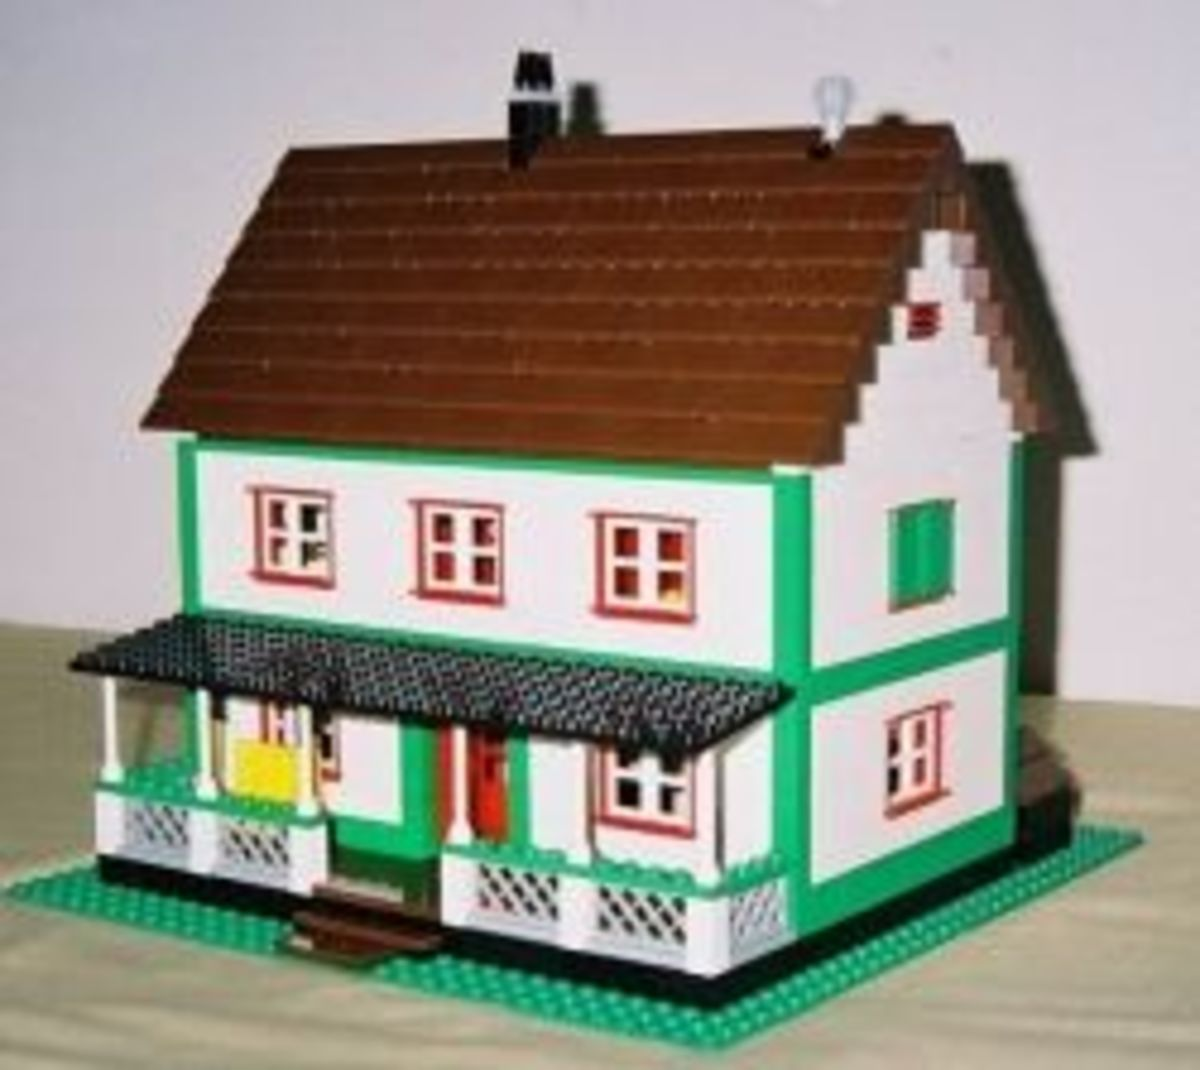 LEGO model of farmhouse